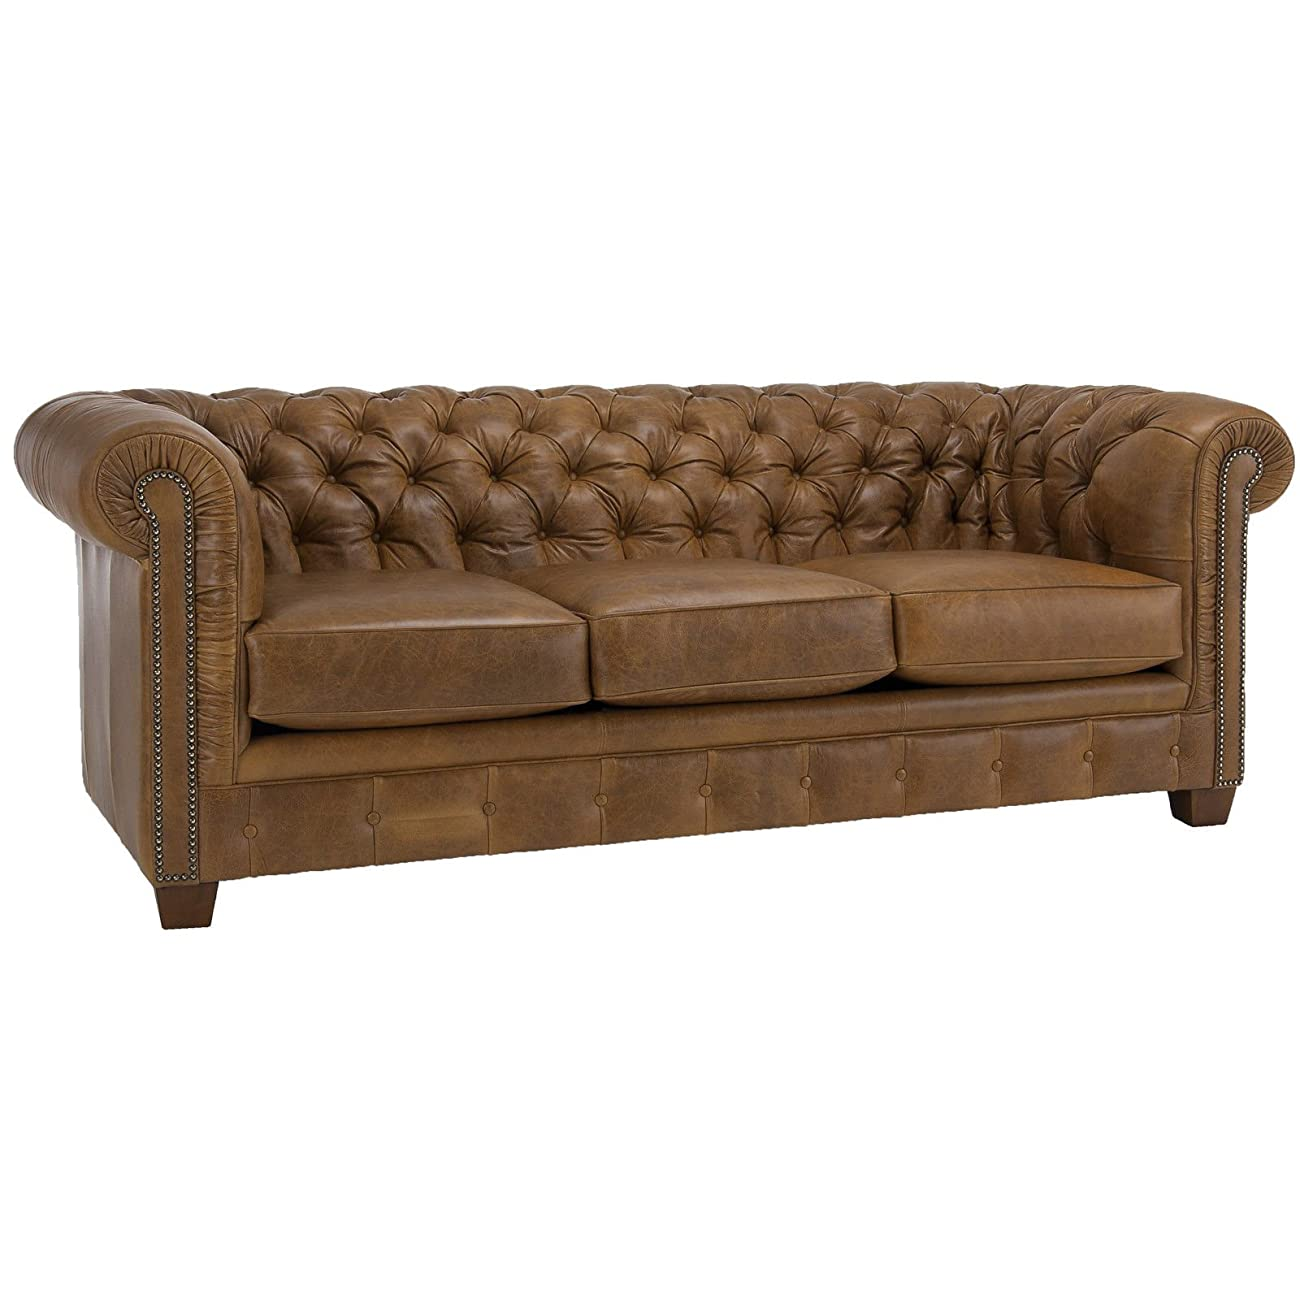 Metro Shop Hancock Tufted Distressed Saddle Brown Italian Leather Sofa 0